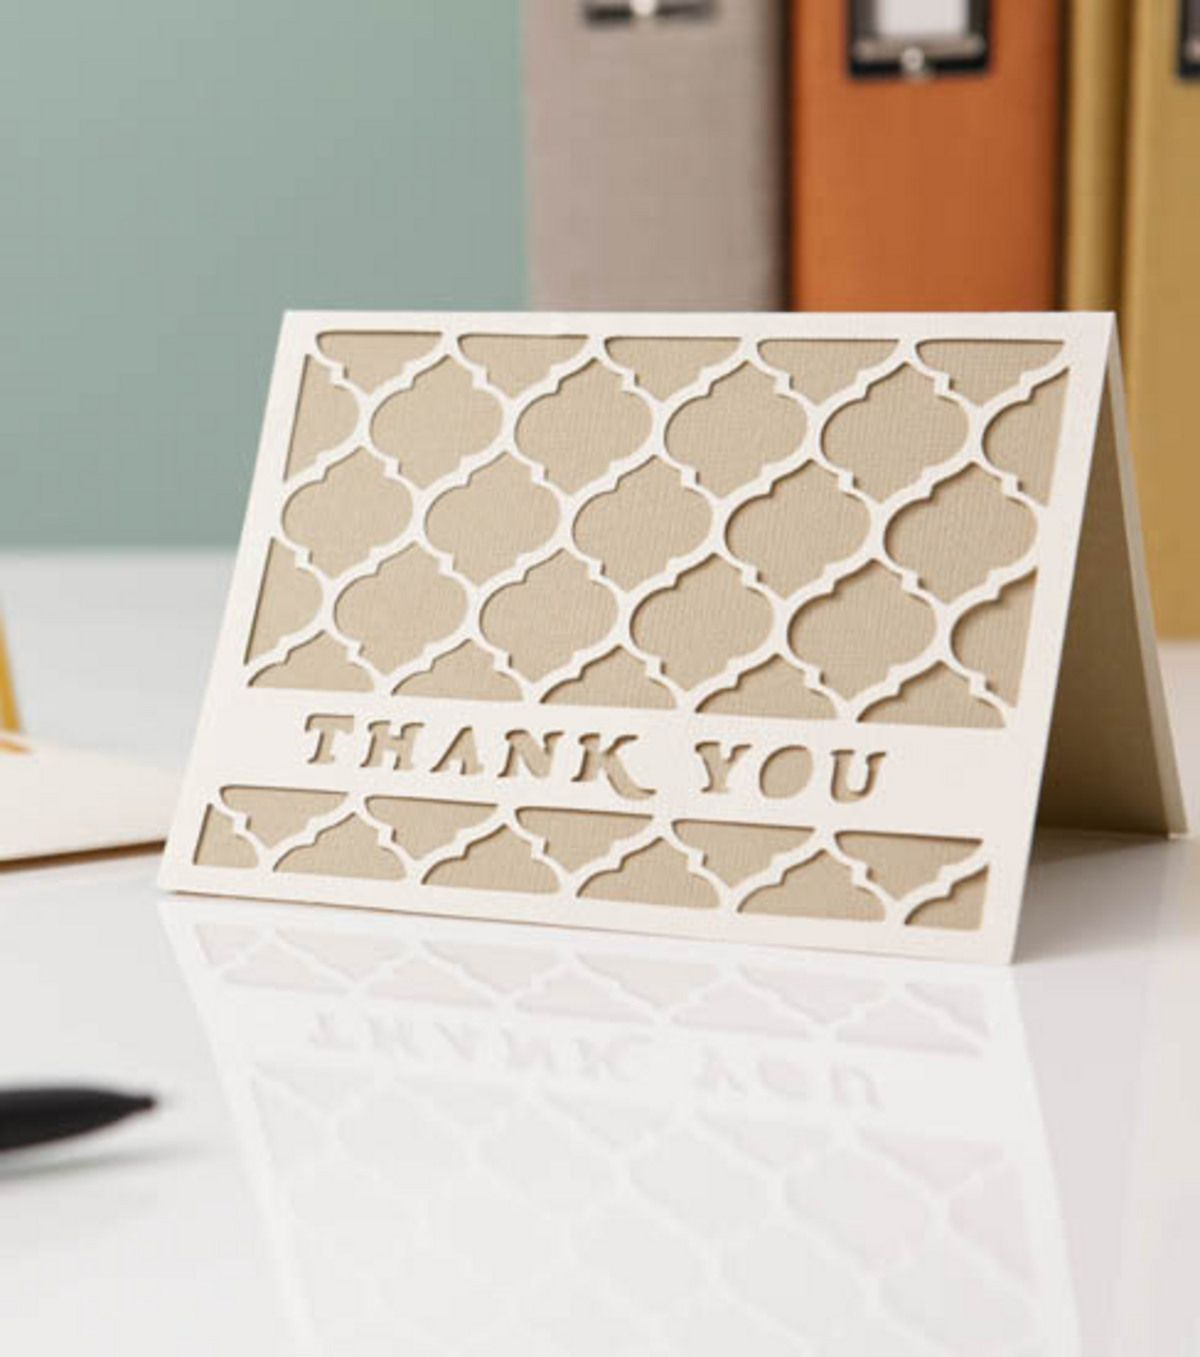 Cricut Mini Elegant Thank You Card And Envelope At Joann Com Cricut Cards Thank You Cards Cards